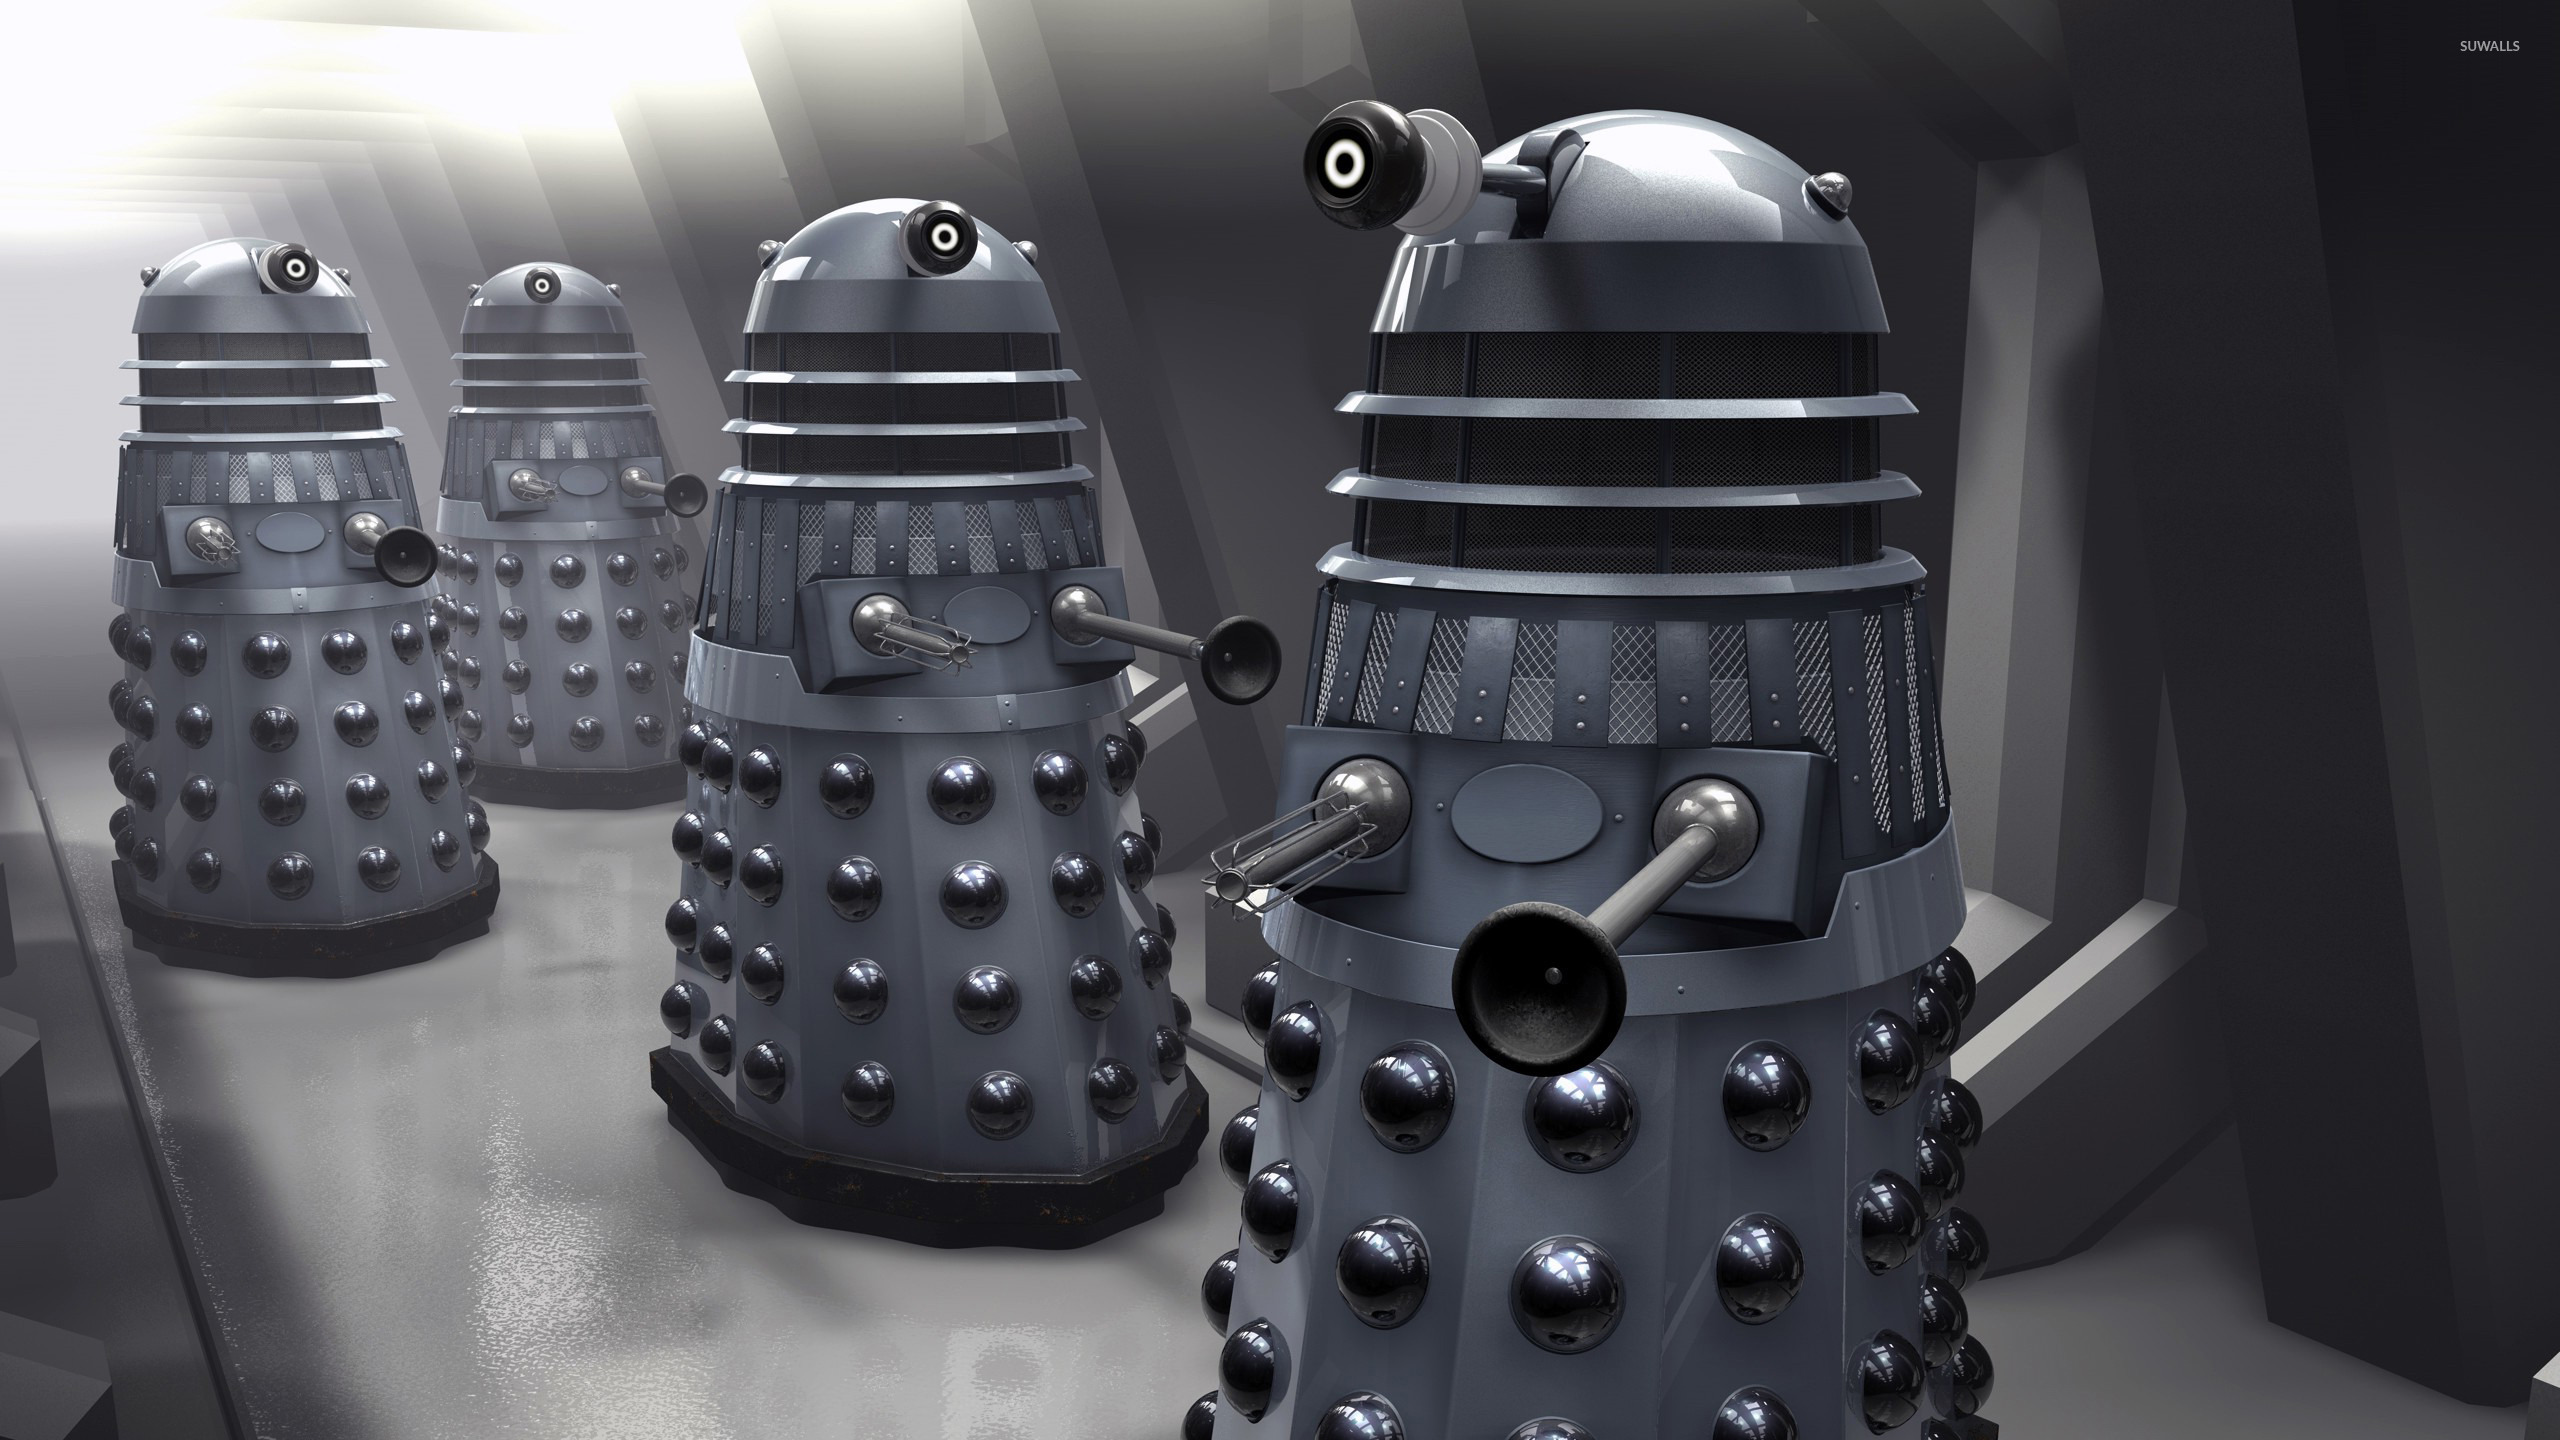 Dalek Doctor Who Wallpaper Tv Show Wallpapers 18081